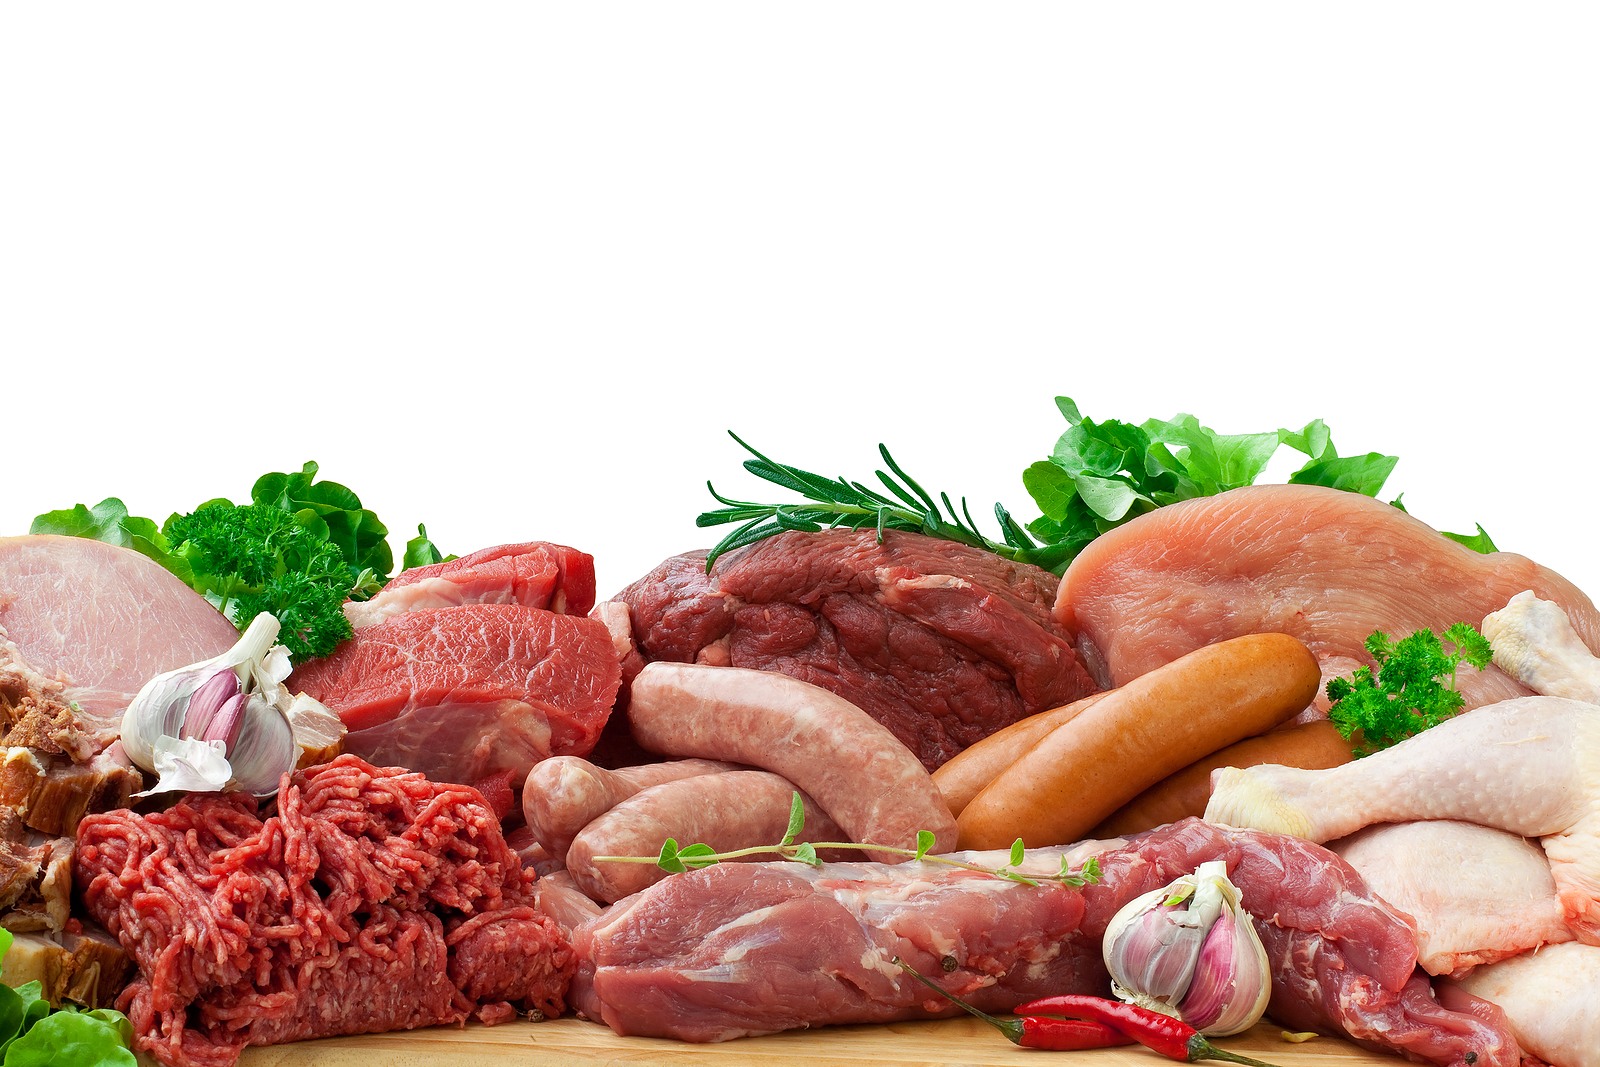 Selection of Raw Meats